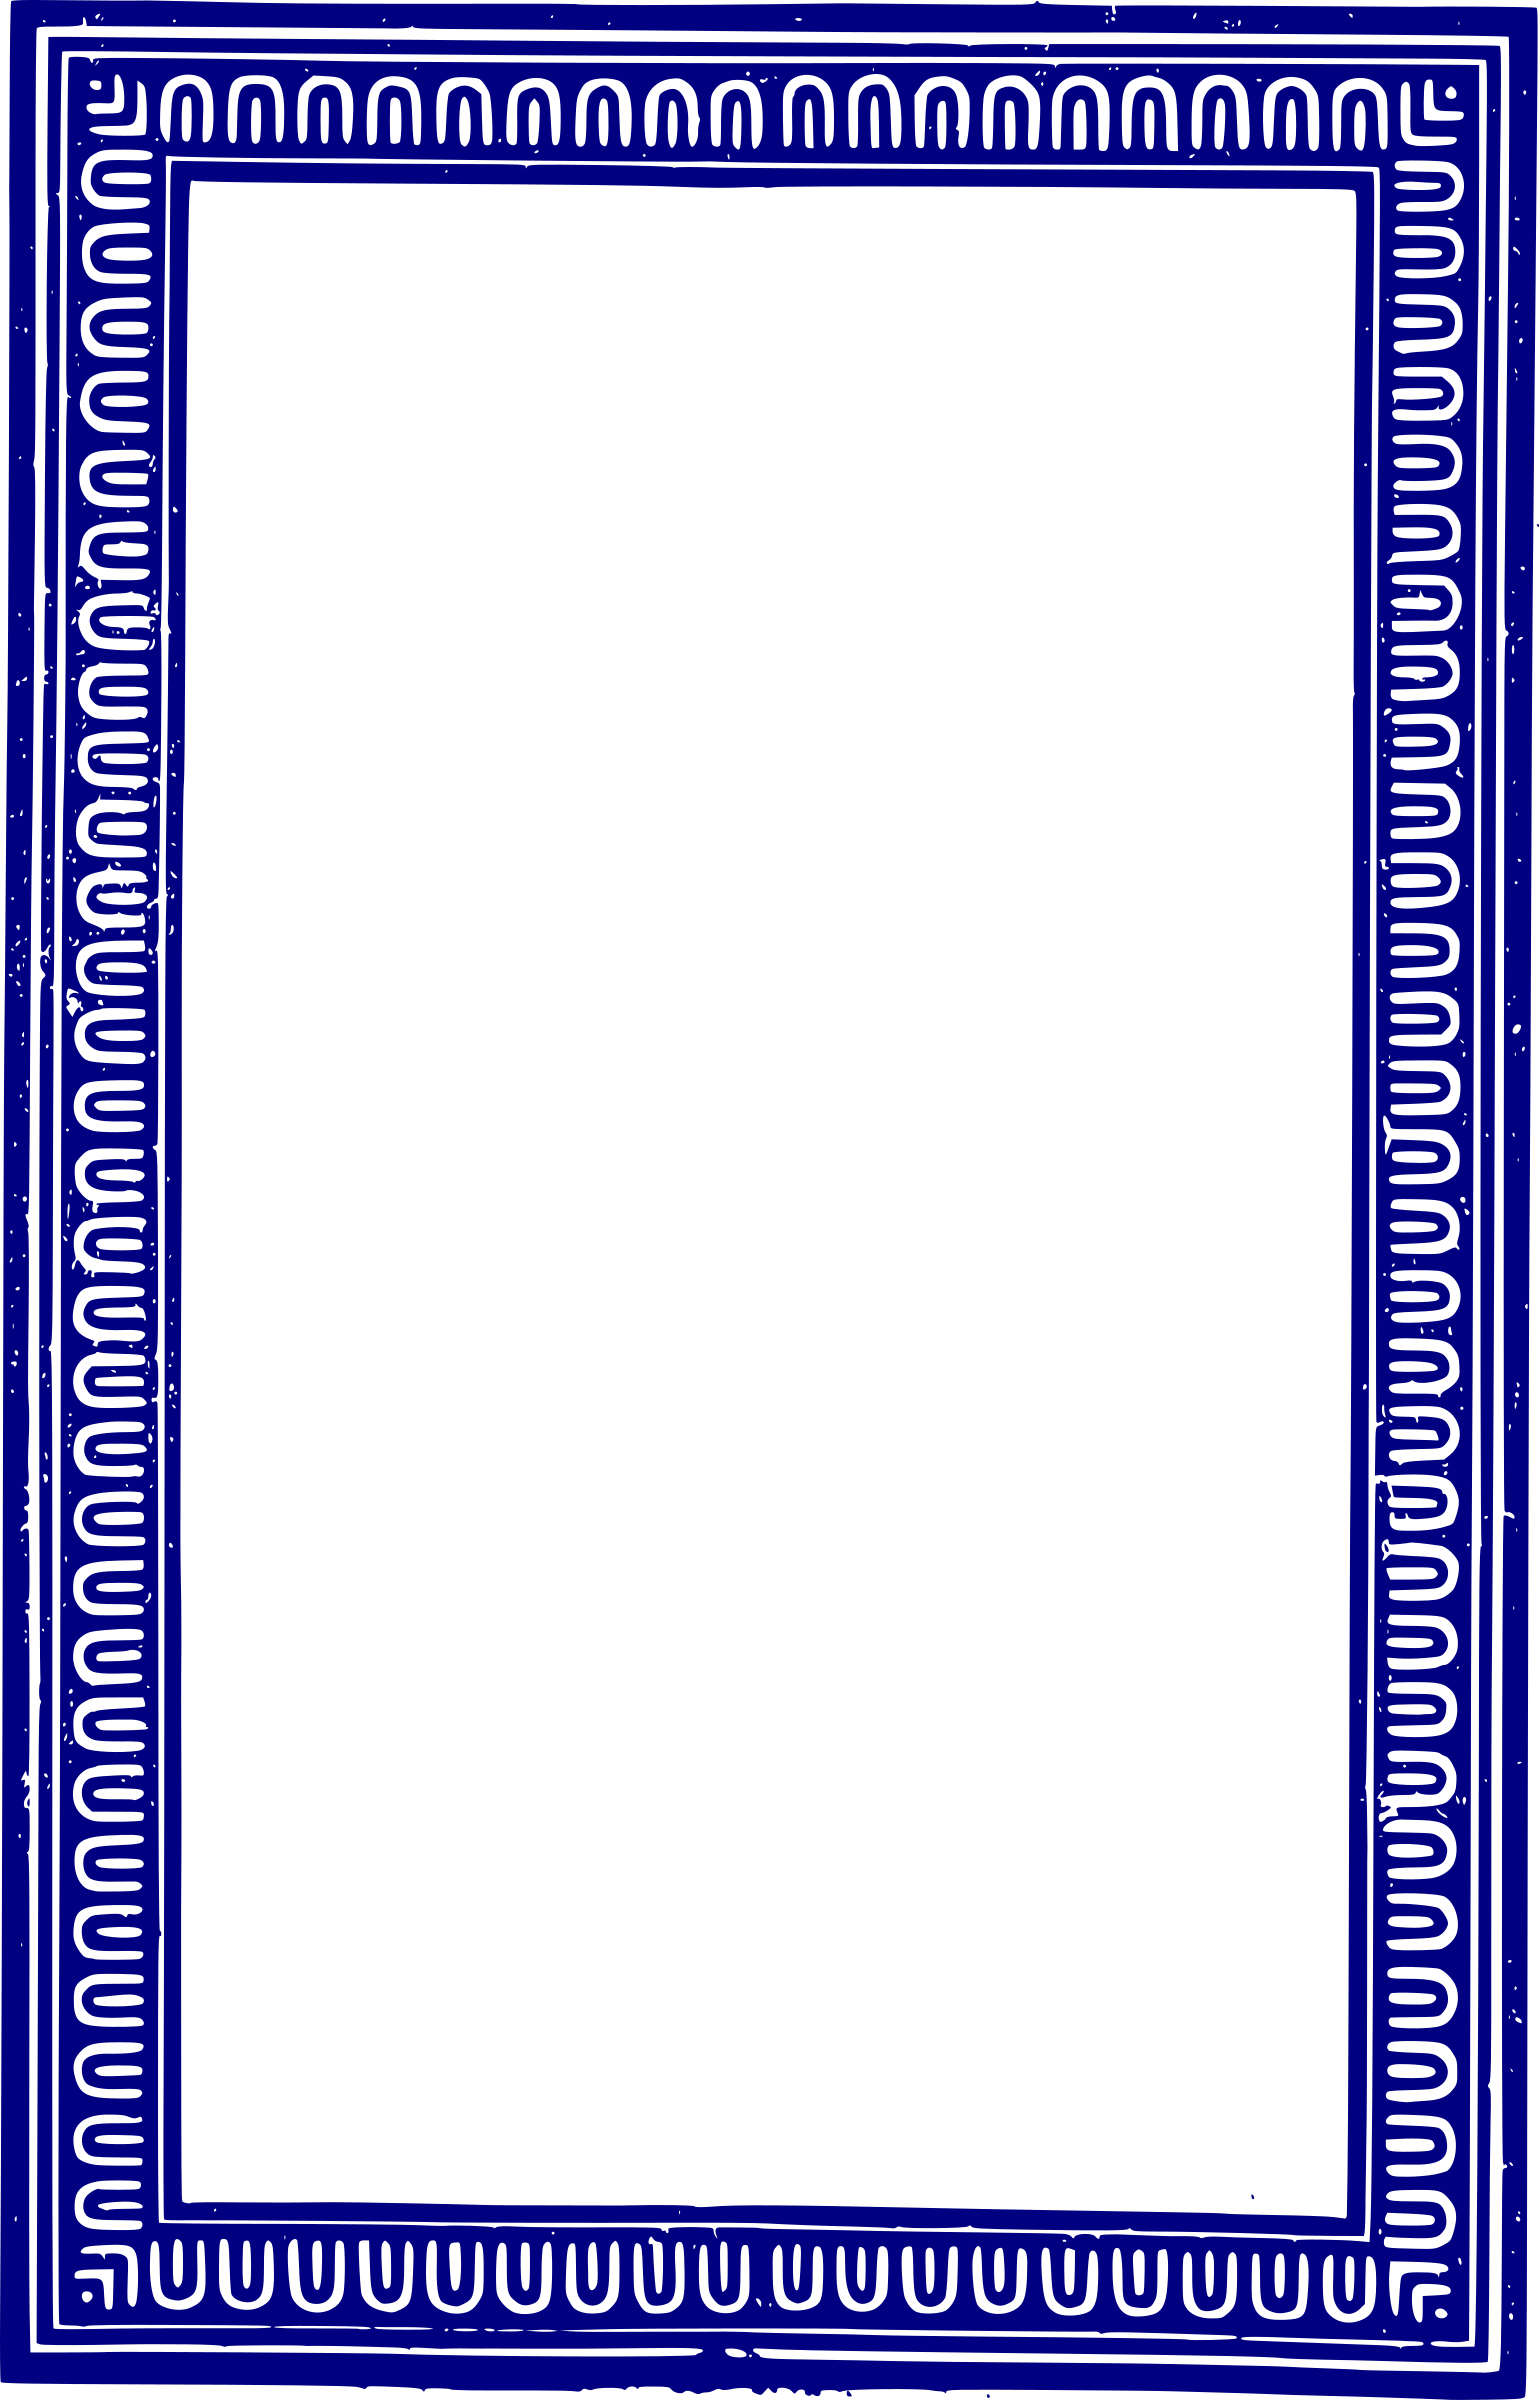 Frames clipart blue. Solid frame icons png